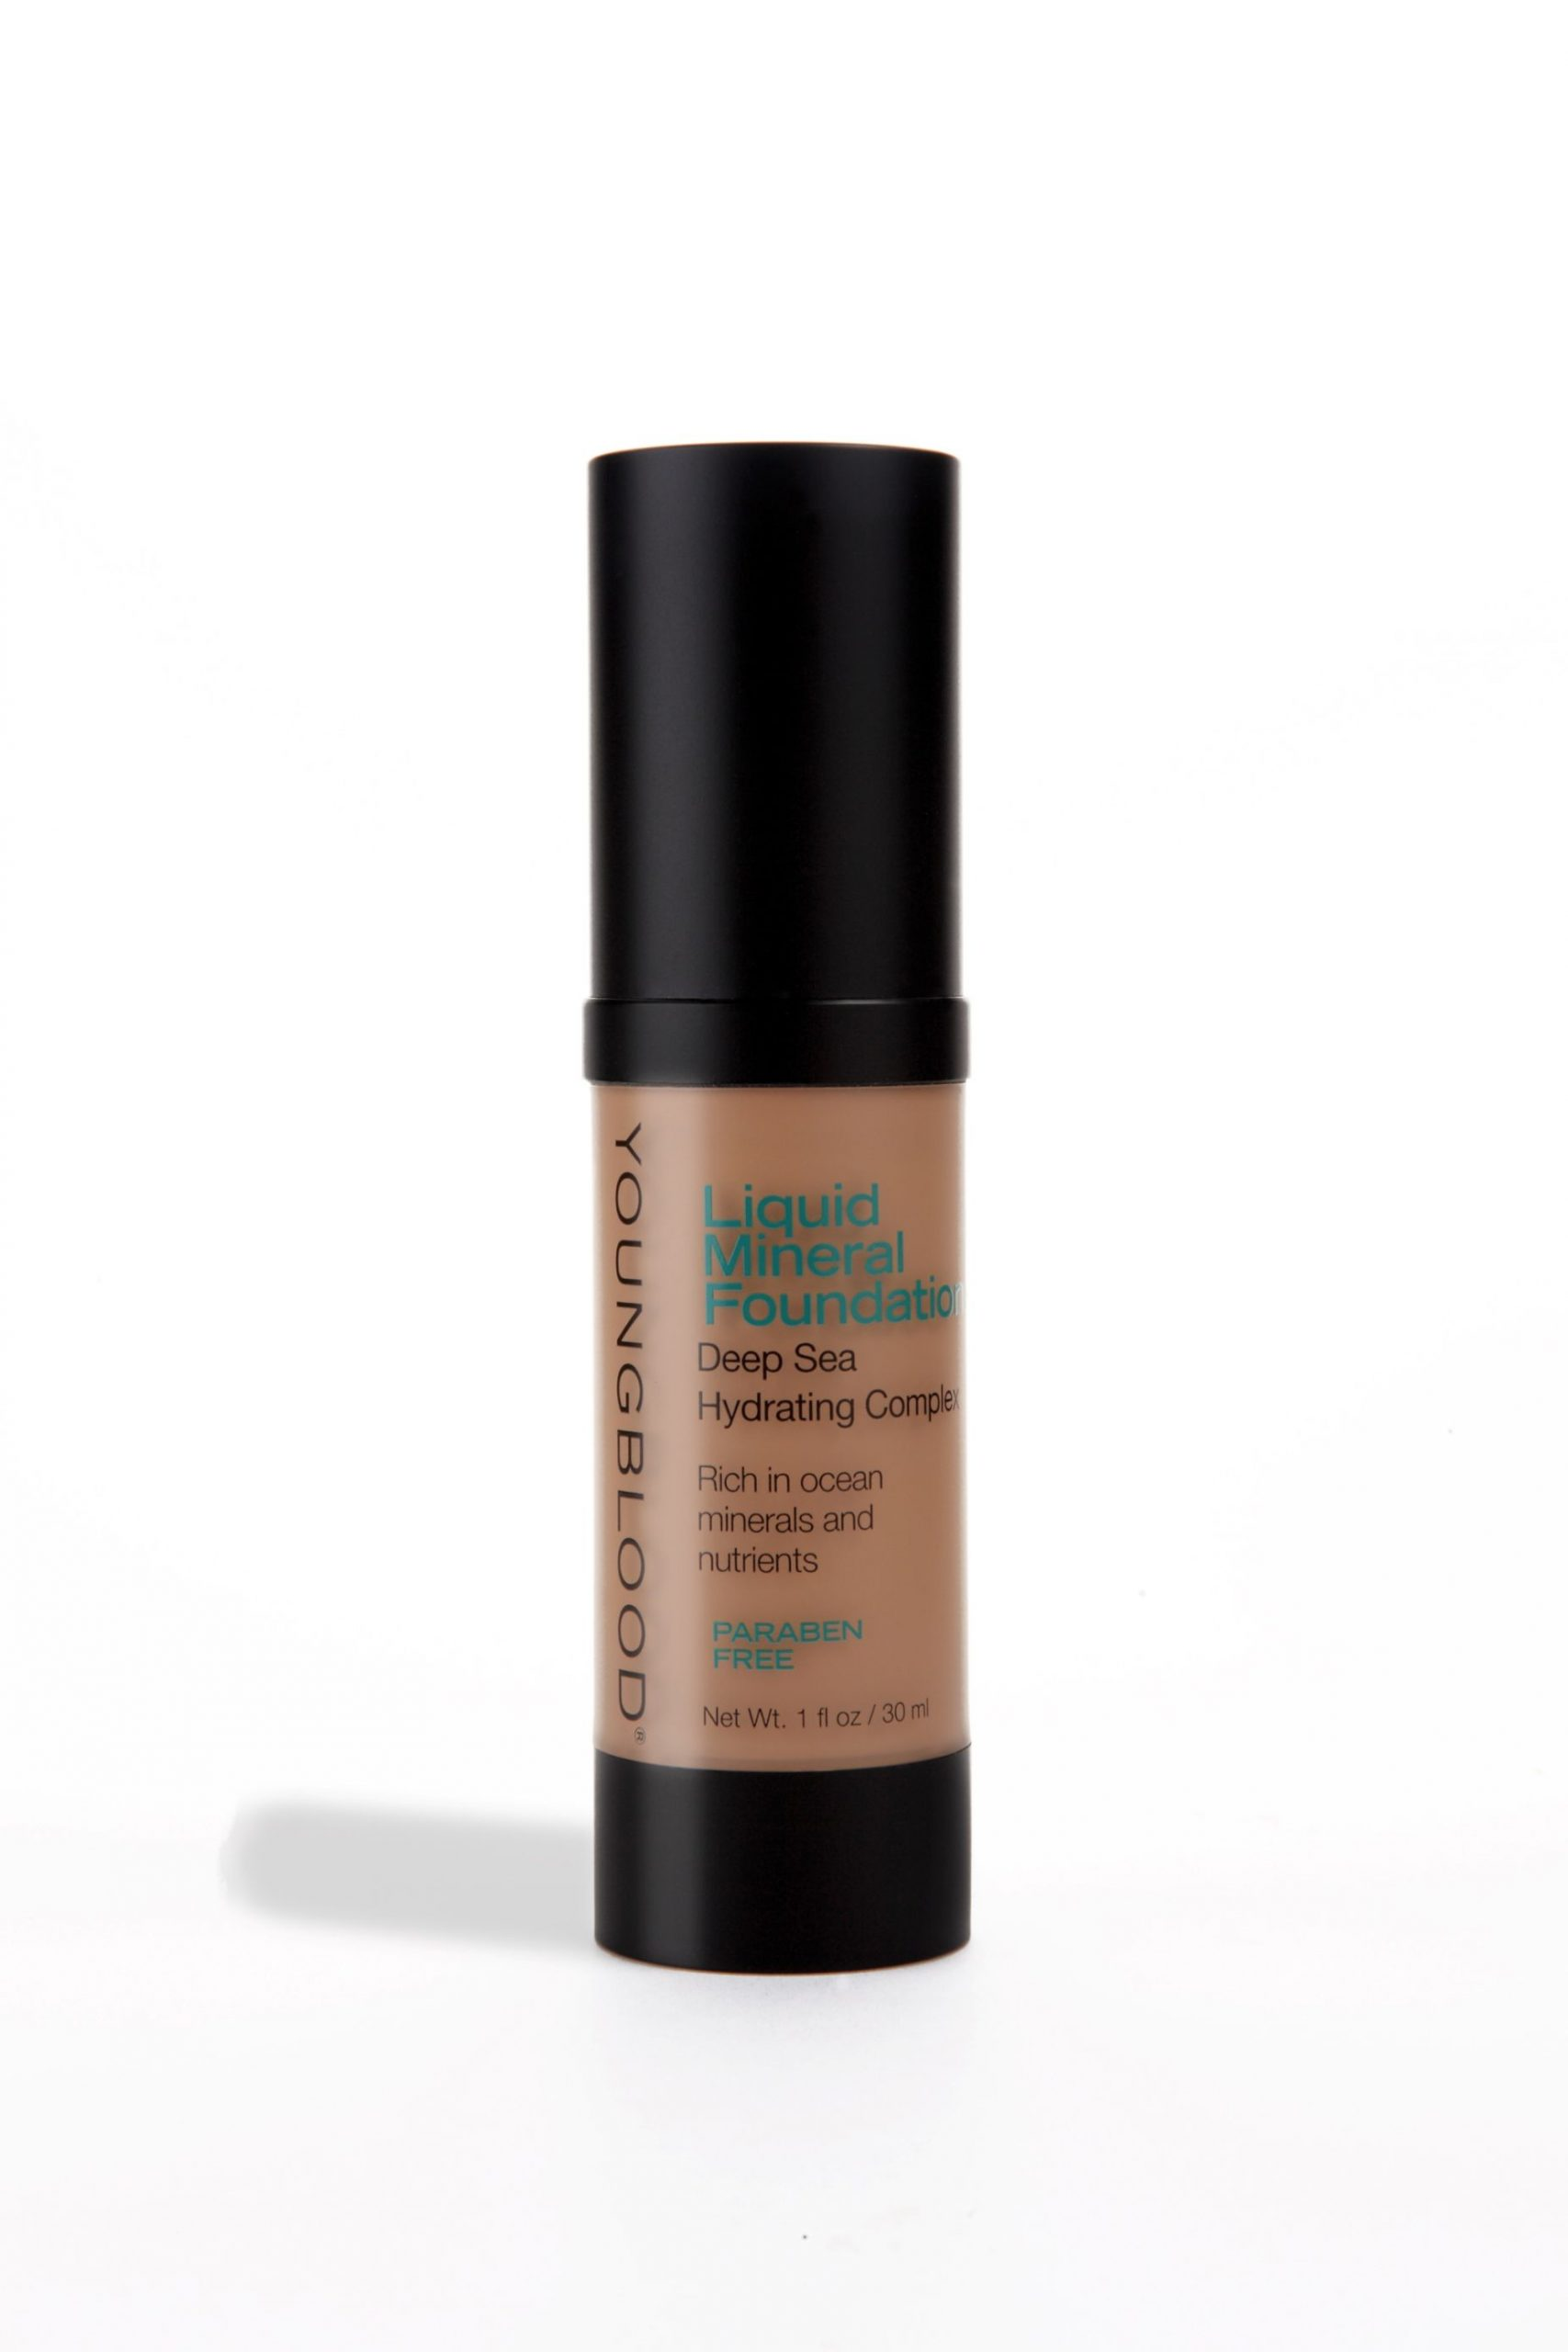 Youngblood | Liquid Mineral Foundation |  Caribbean